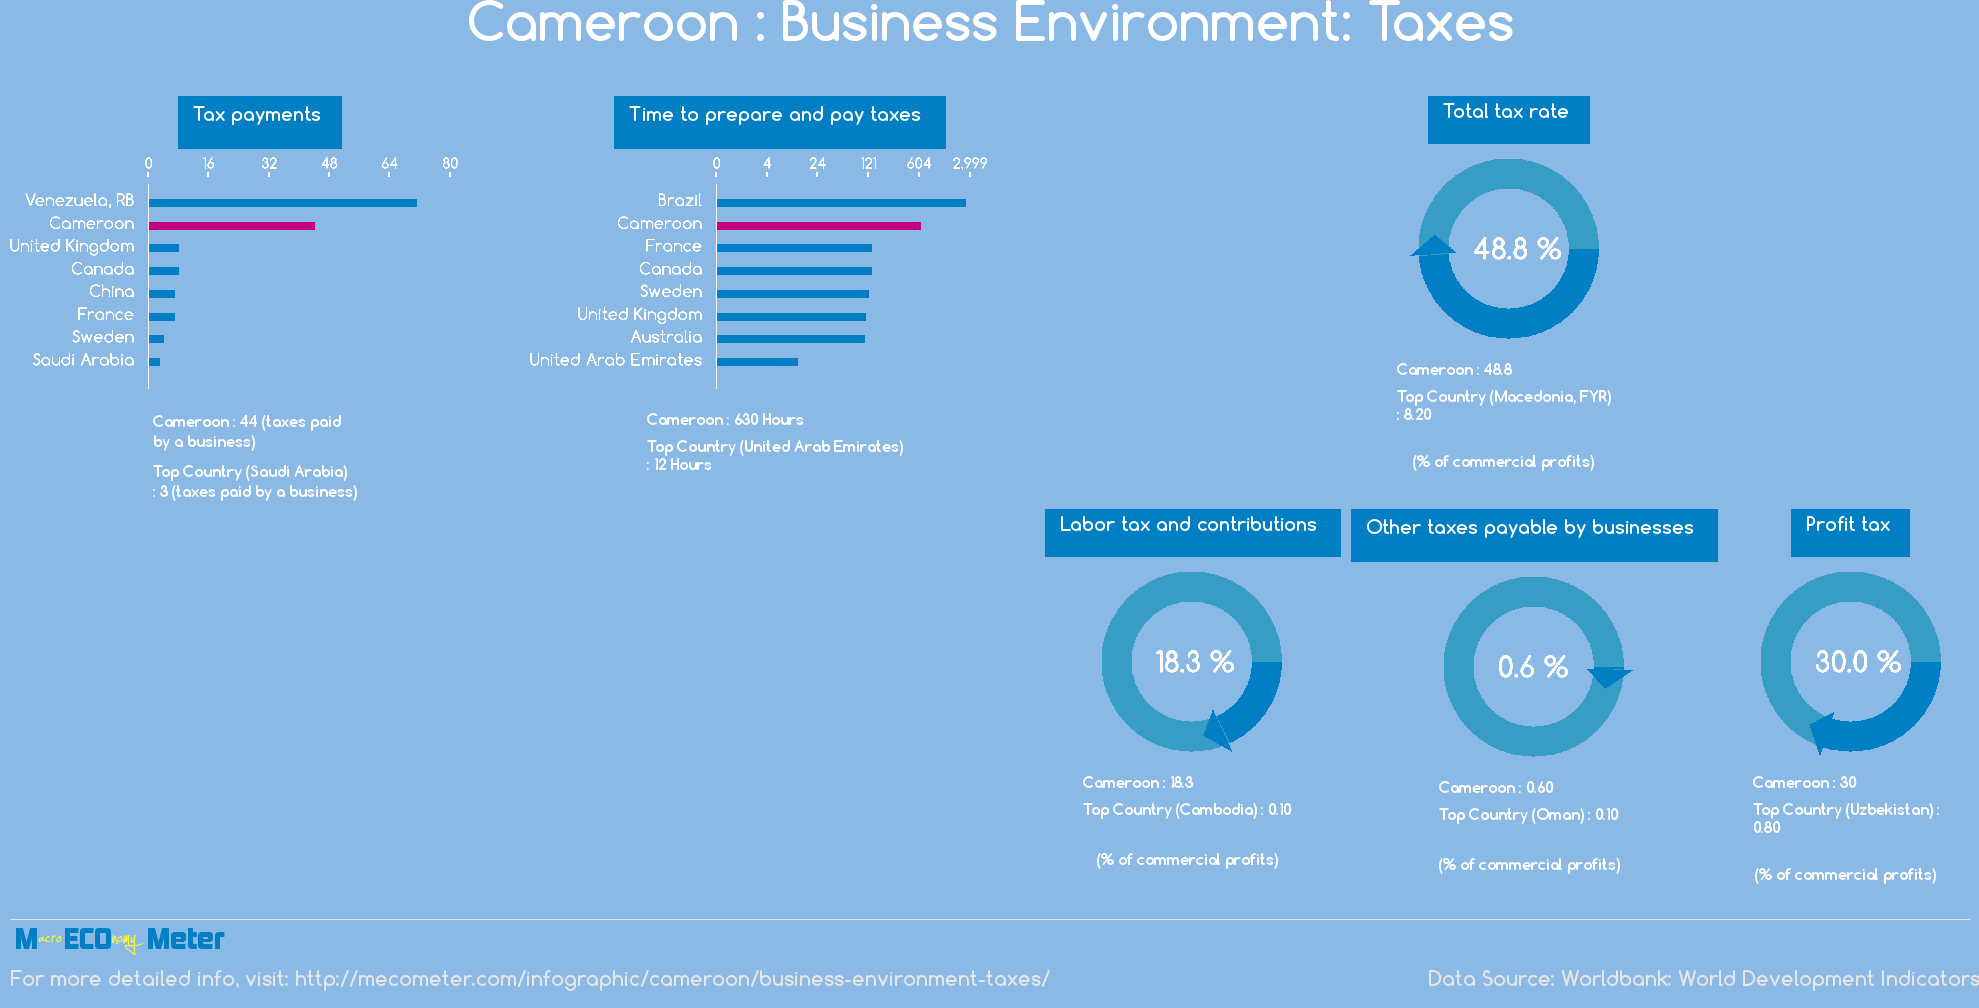 Cameroon : Business Environment: Taxes